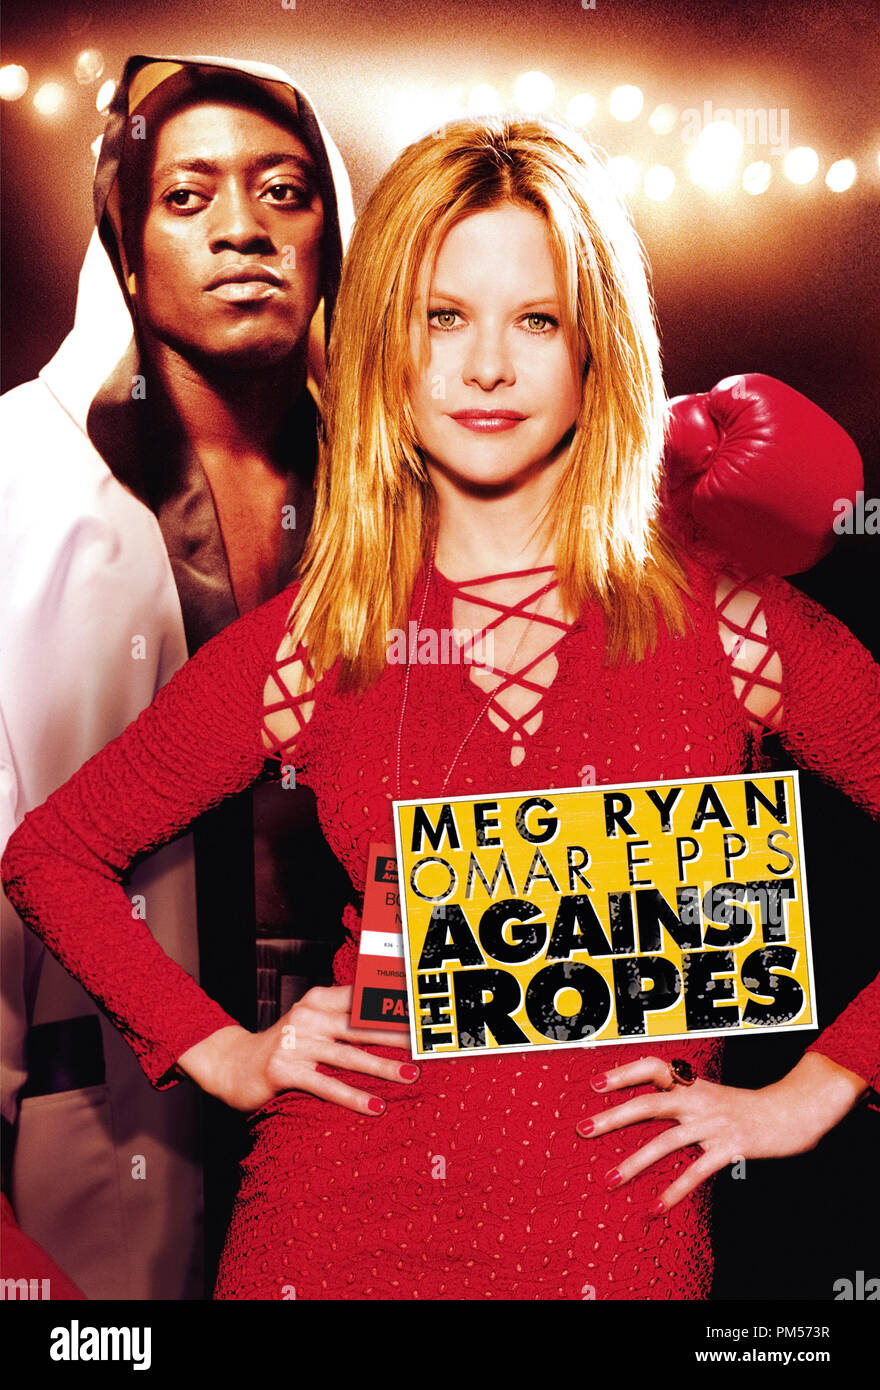 Poster Art from 'Against the Ropes' Poster Meg Ryan and Omar Epps © 2004 Paramount File Reference # 307351497THA  For Editorial Use Only -  All Rights Reserved - Stock Image